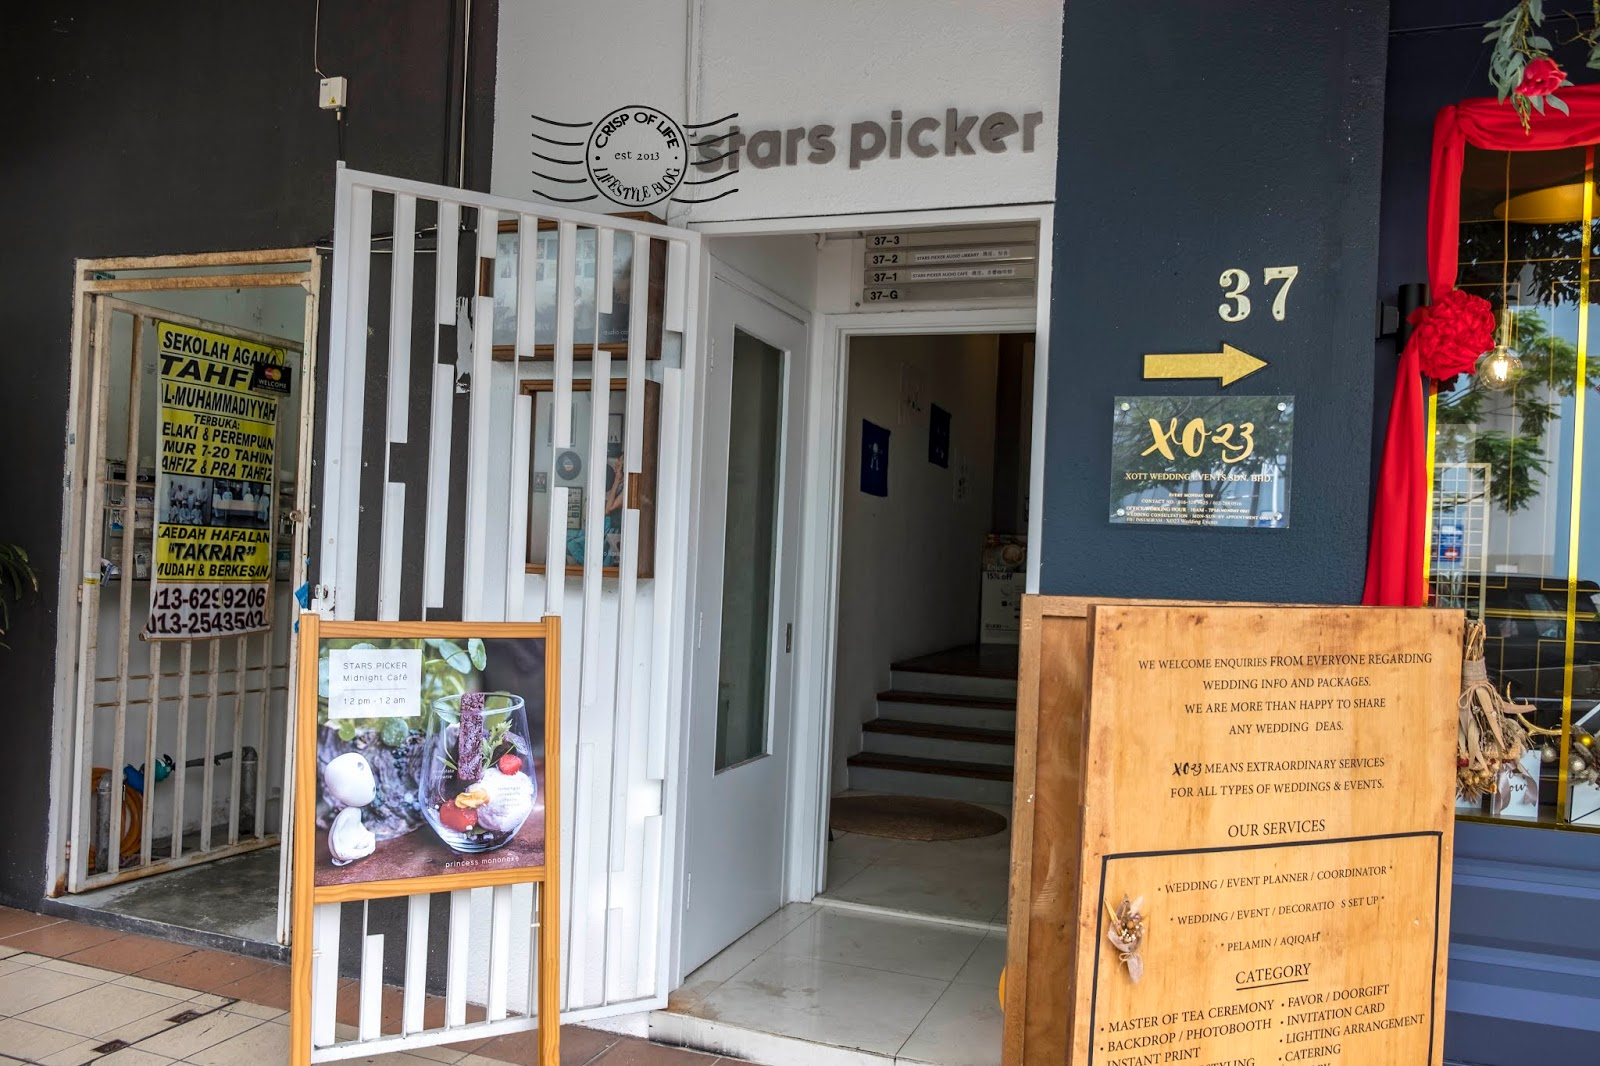 Stars Picker Audio Cafe 摘星 . 音響咖啡館 Kota Damansara, Selangor